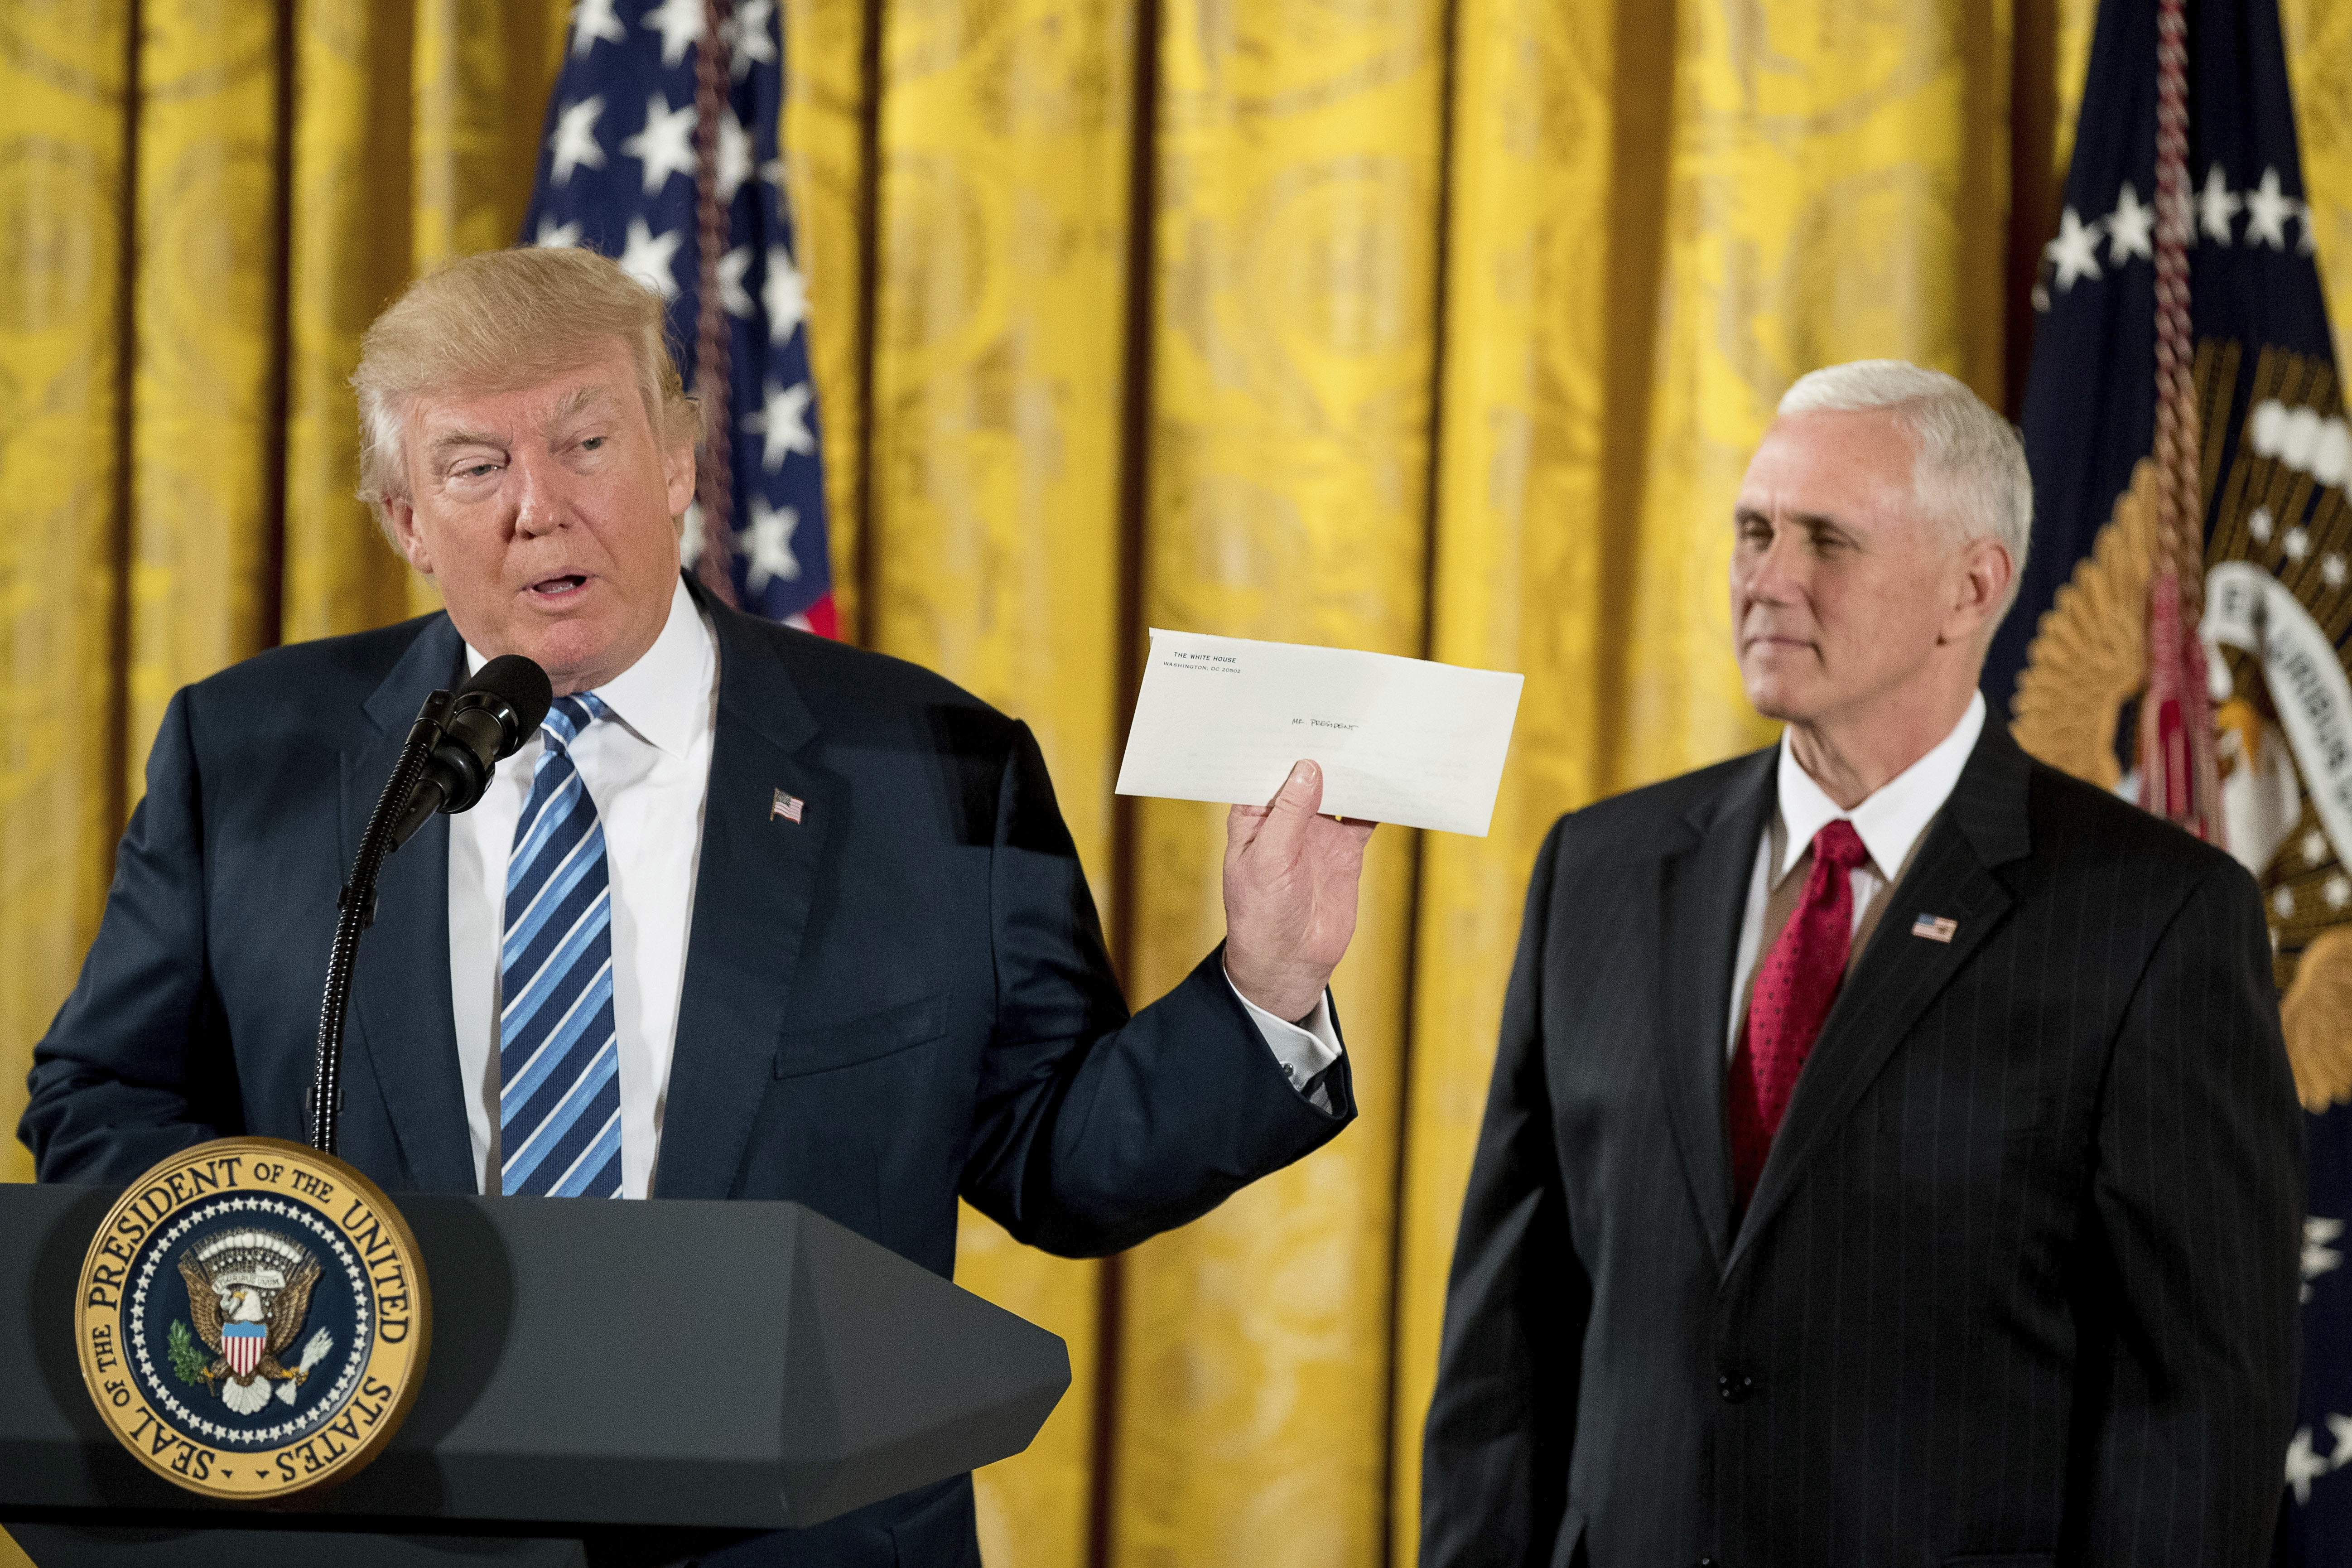 DAY 3 - In this Jan. 22, 2017, file photo, President Donald Trump, accompanied by Vice President Mike Pence, right, holds up a letter left for him by former President Barack Obama as he speaks at a White House senior staff swearing in ceremony in the East Room of the White House. (AP Photo/Andrew Harnik, file)